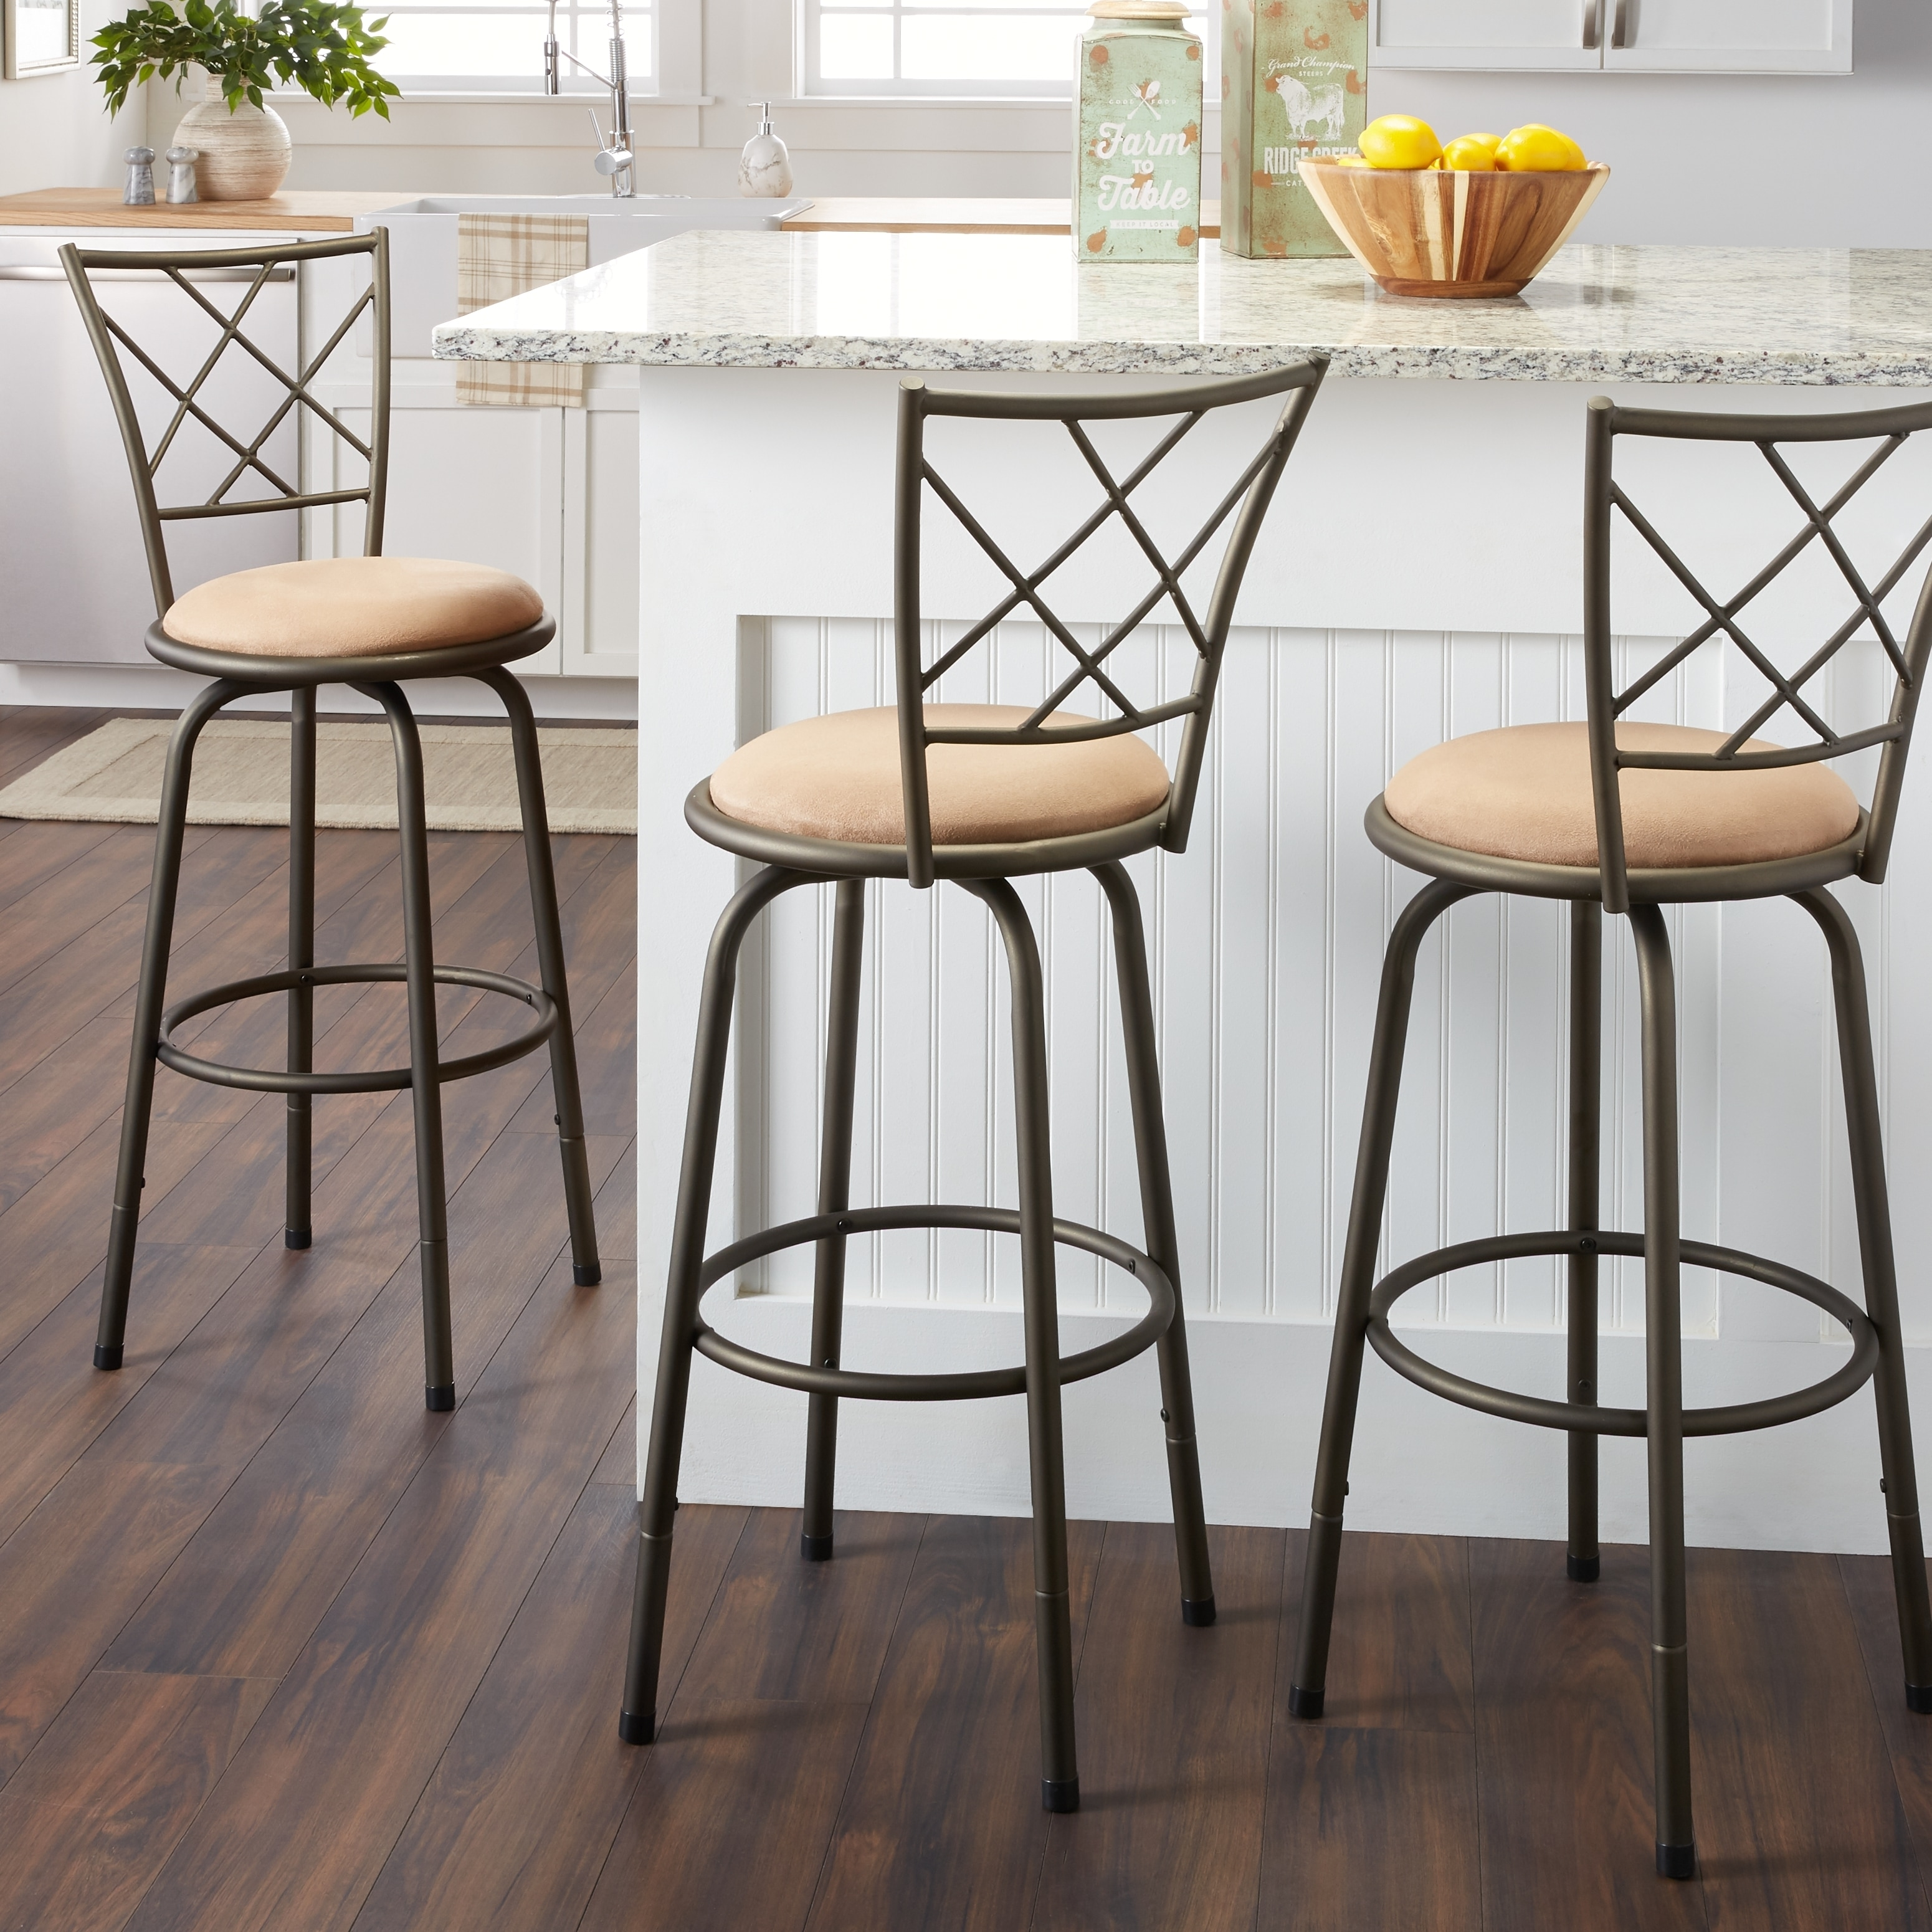 Avalon Quarter Cross Adjustable Swivel High Back Kitchen Stools (Set of 3)  by iNSPIRE Q Classic